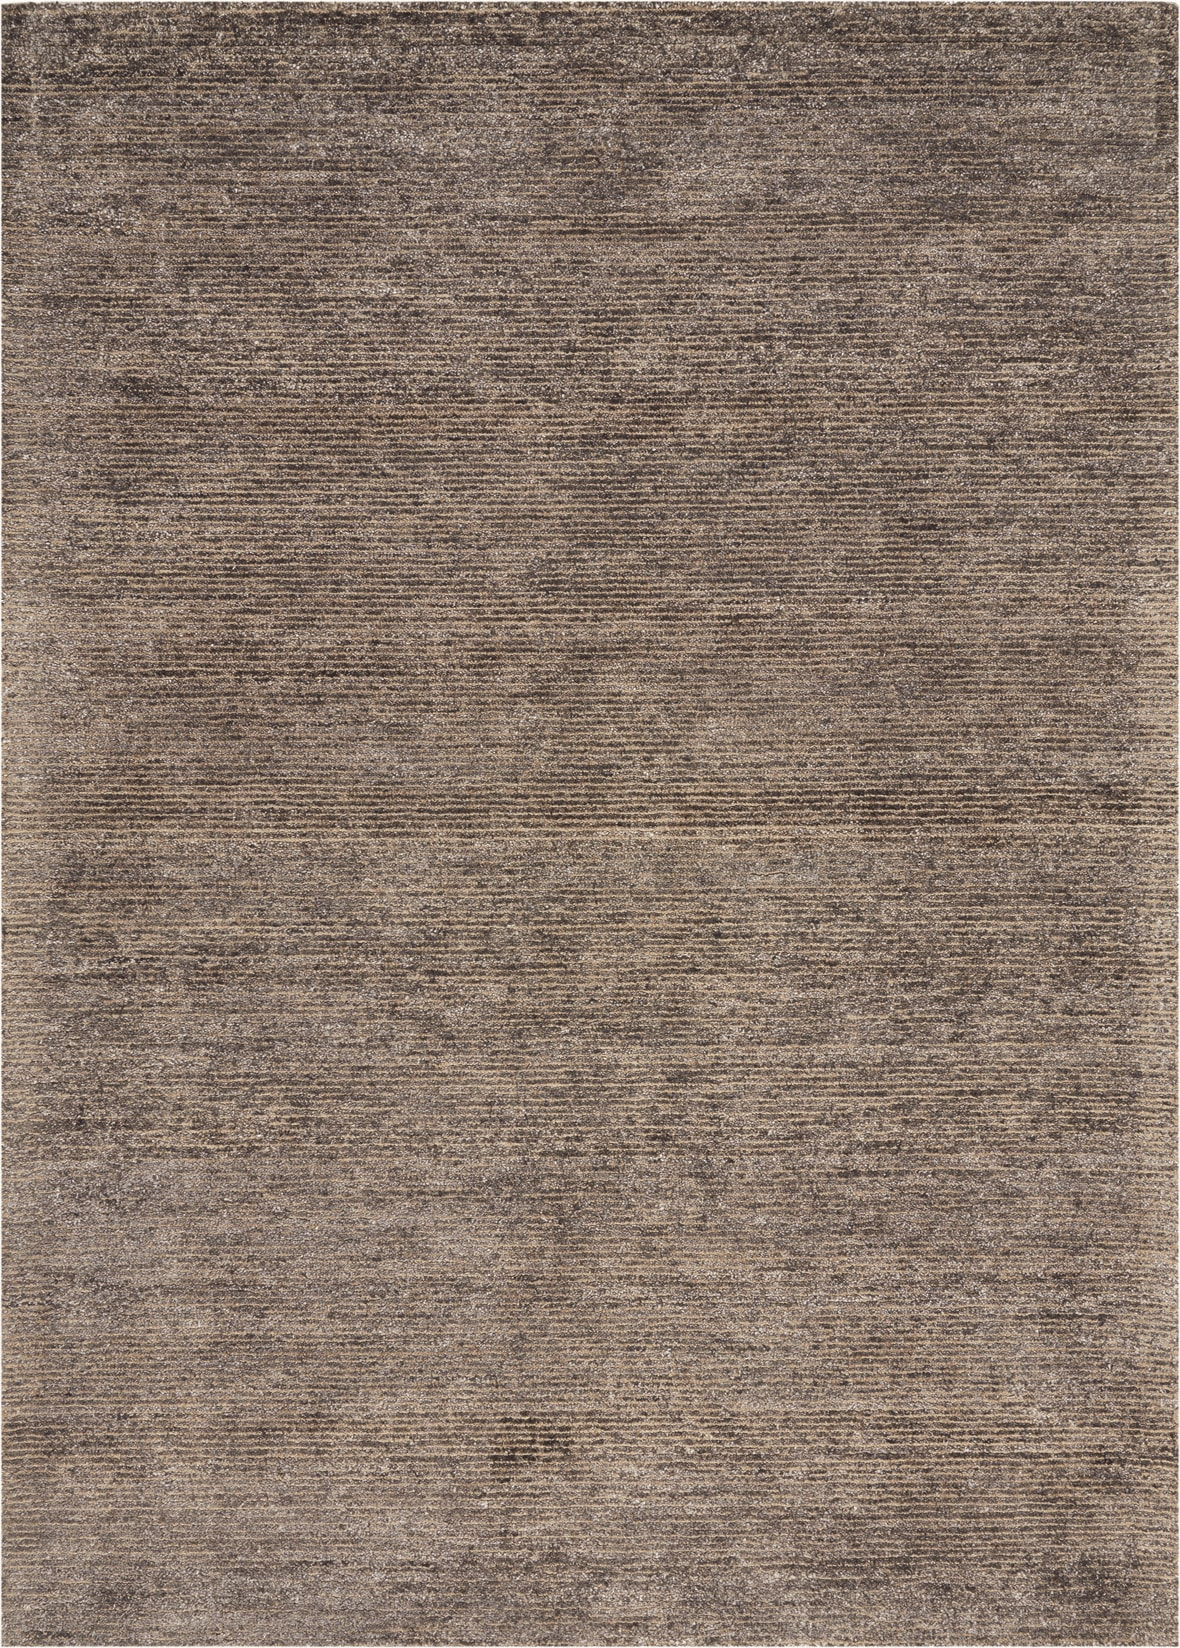 Weston Rug WES01 Charc